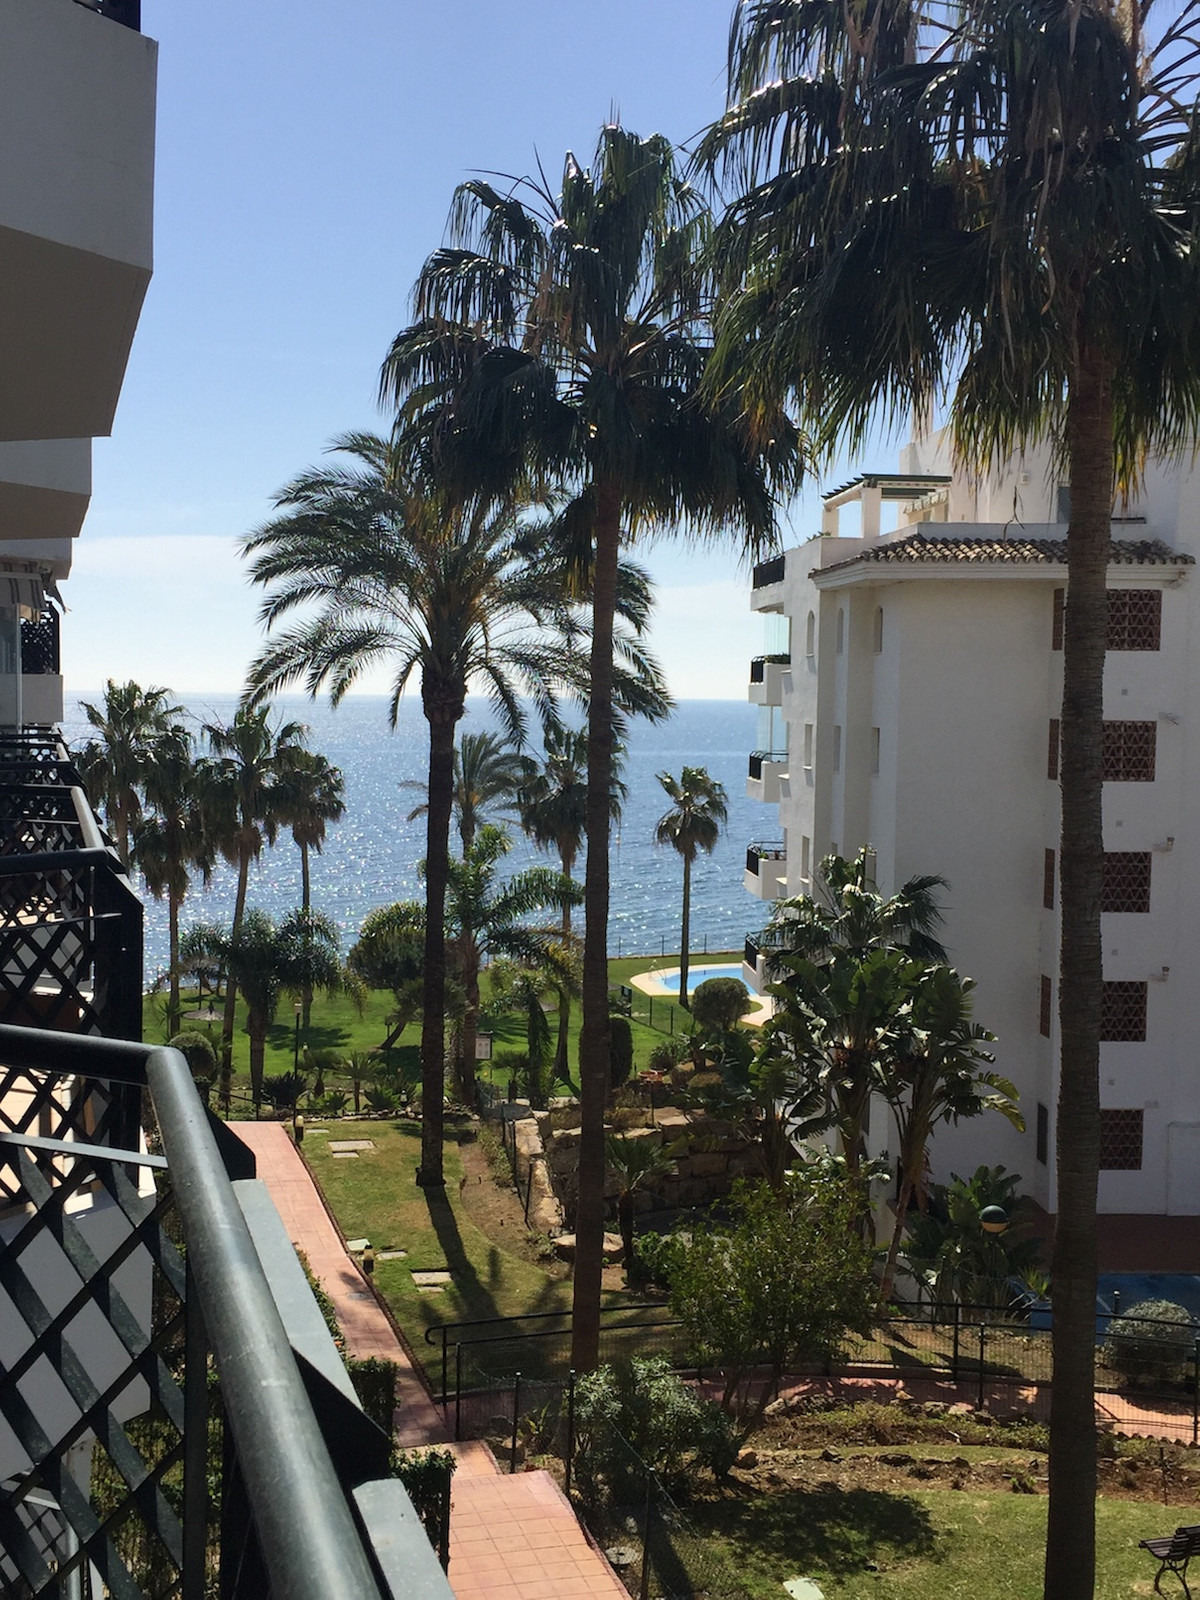 2 bedrooms 2 bathrooms Apartment for rent in Calahonda for €1,000/Month